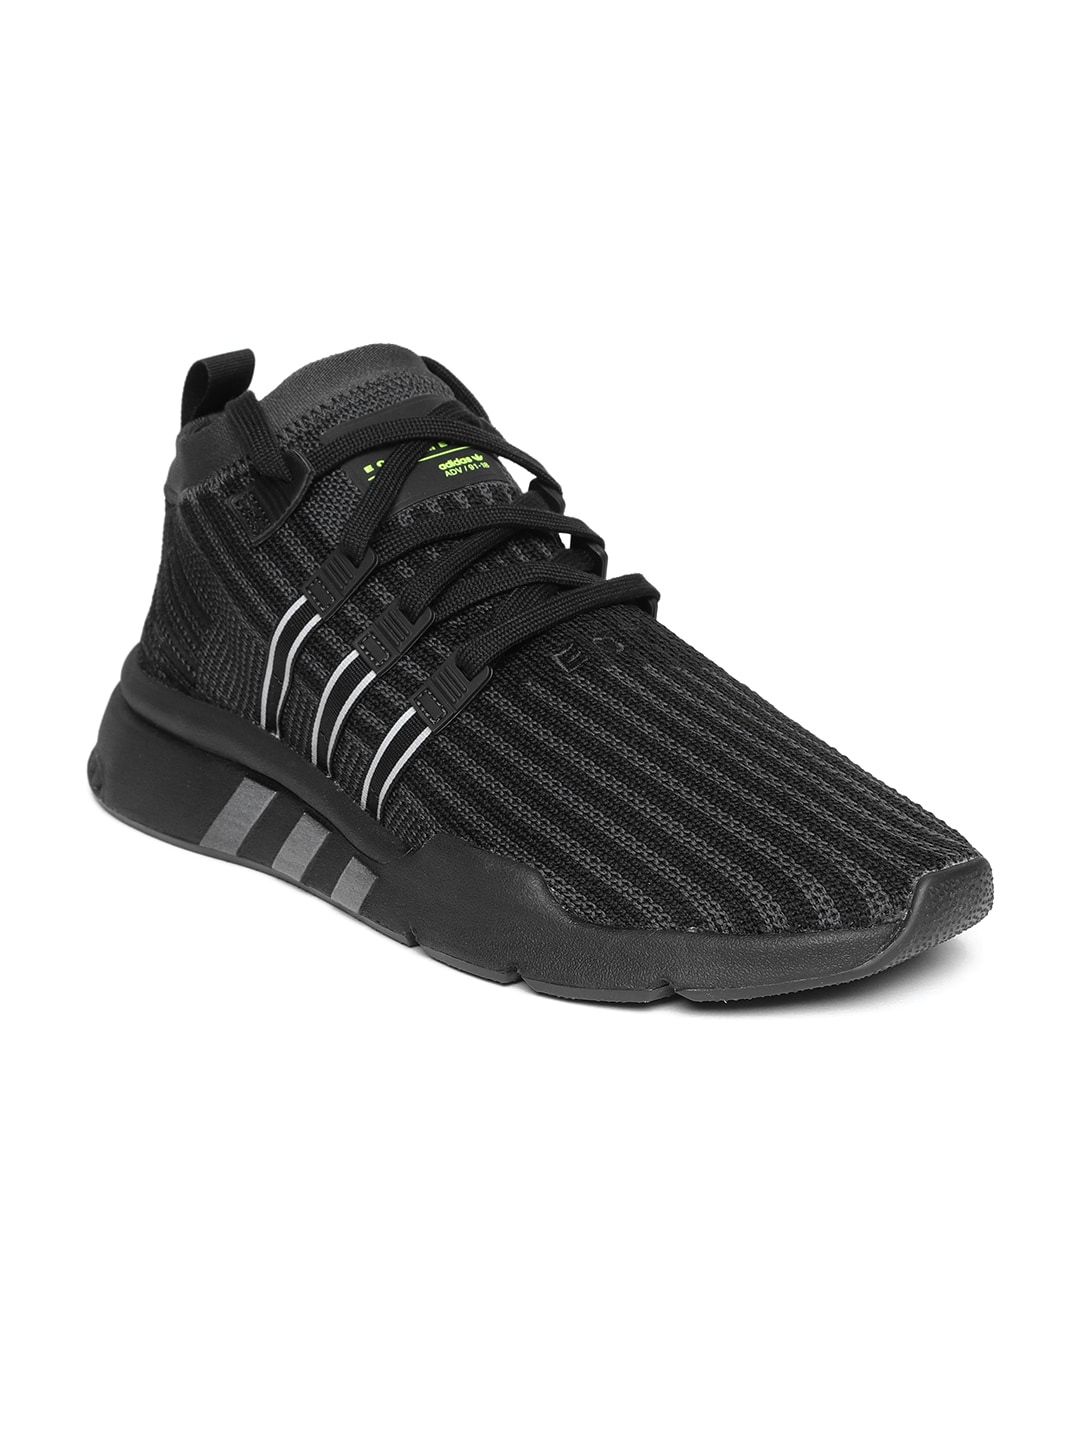 2ee25ef23601 Adidas Shoes - Buy Adidas Shoes for Men   Women Online - Myntra